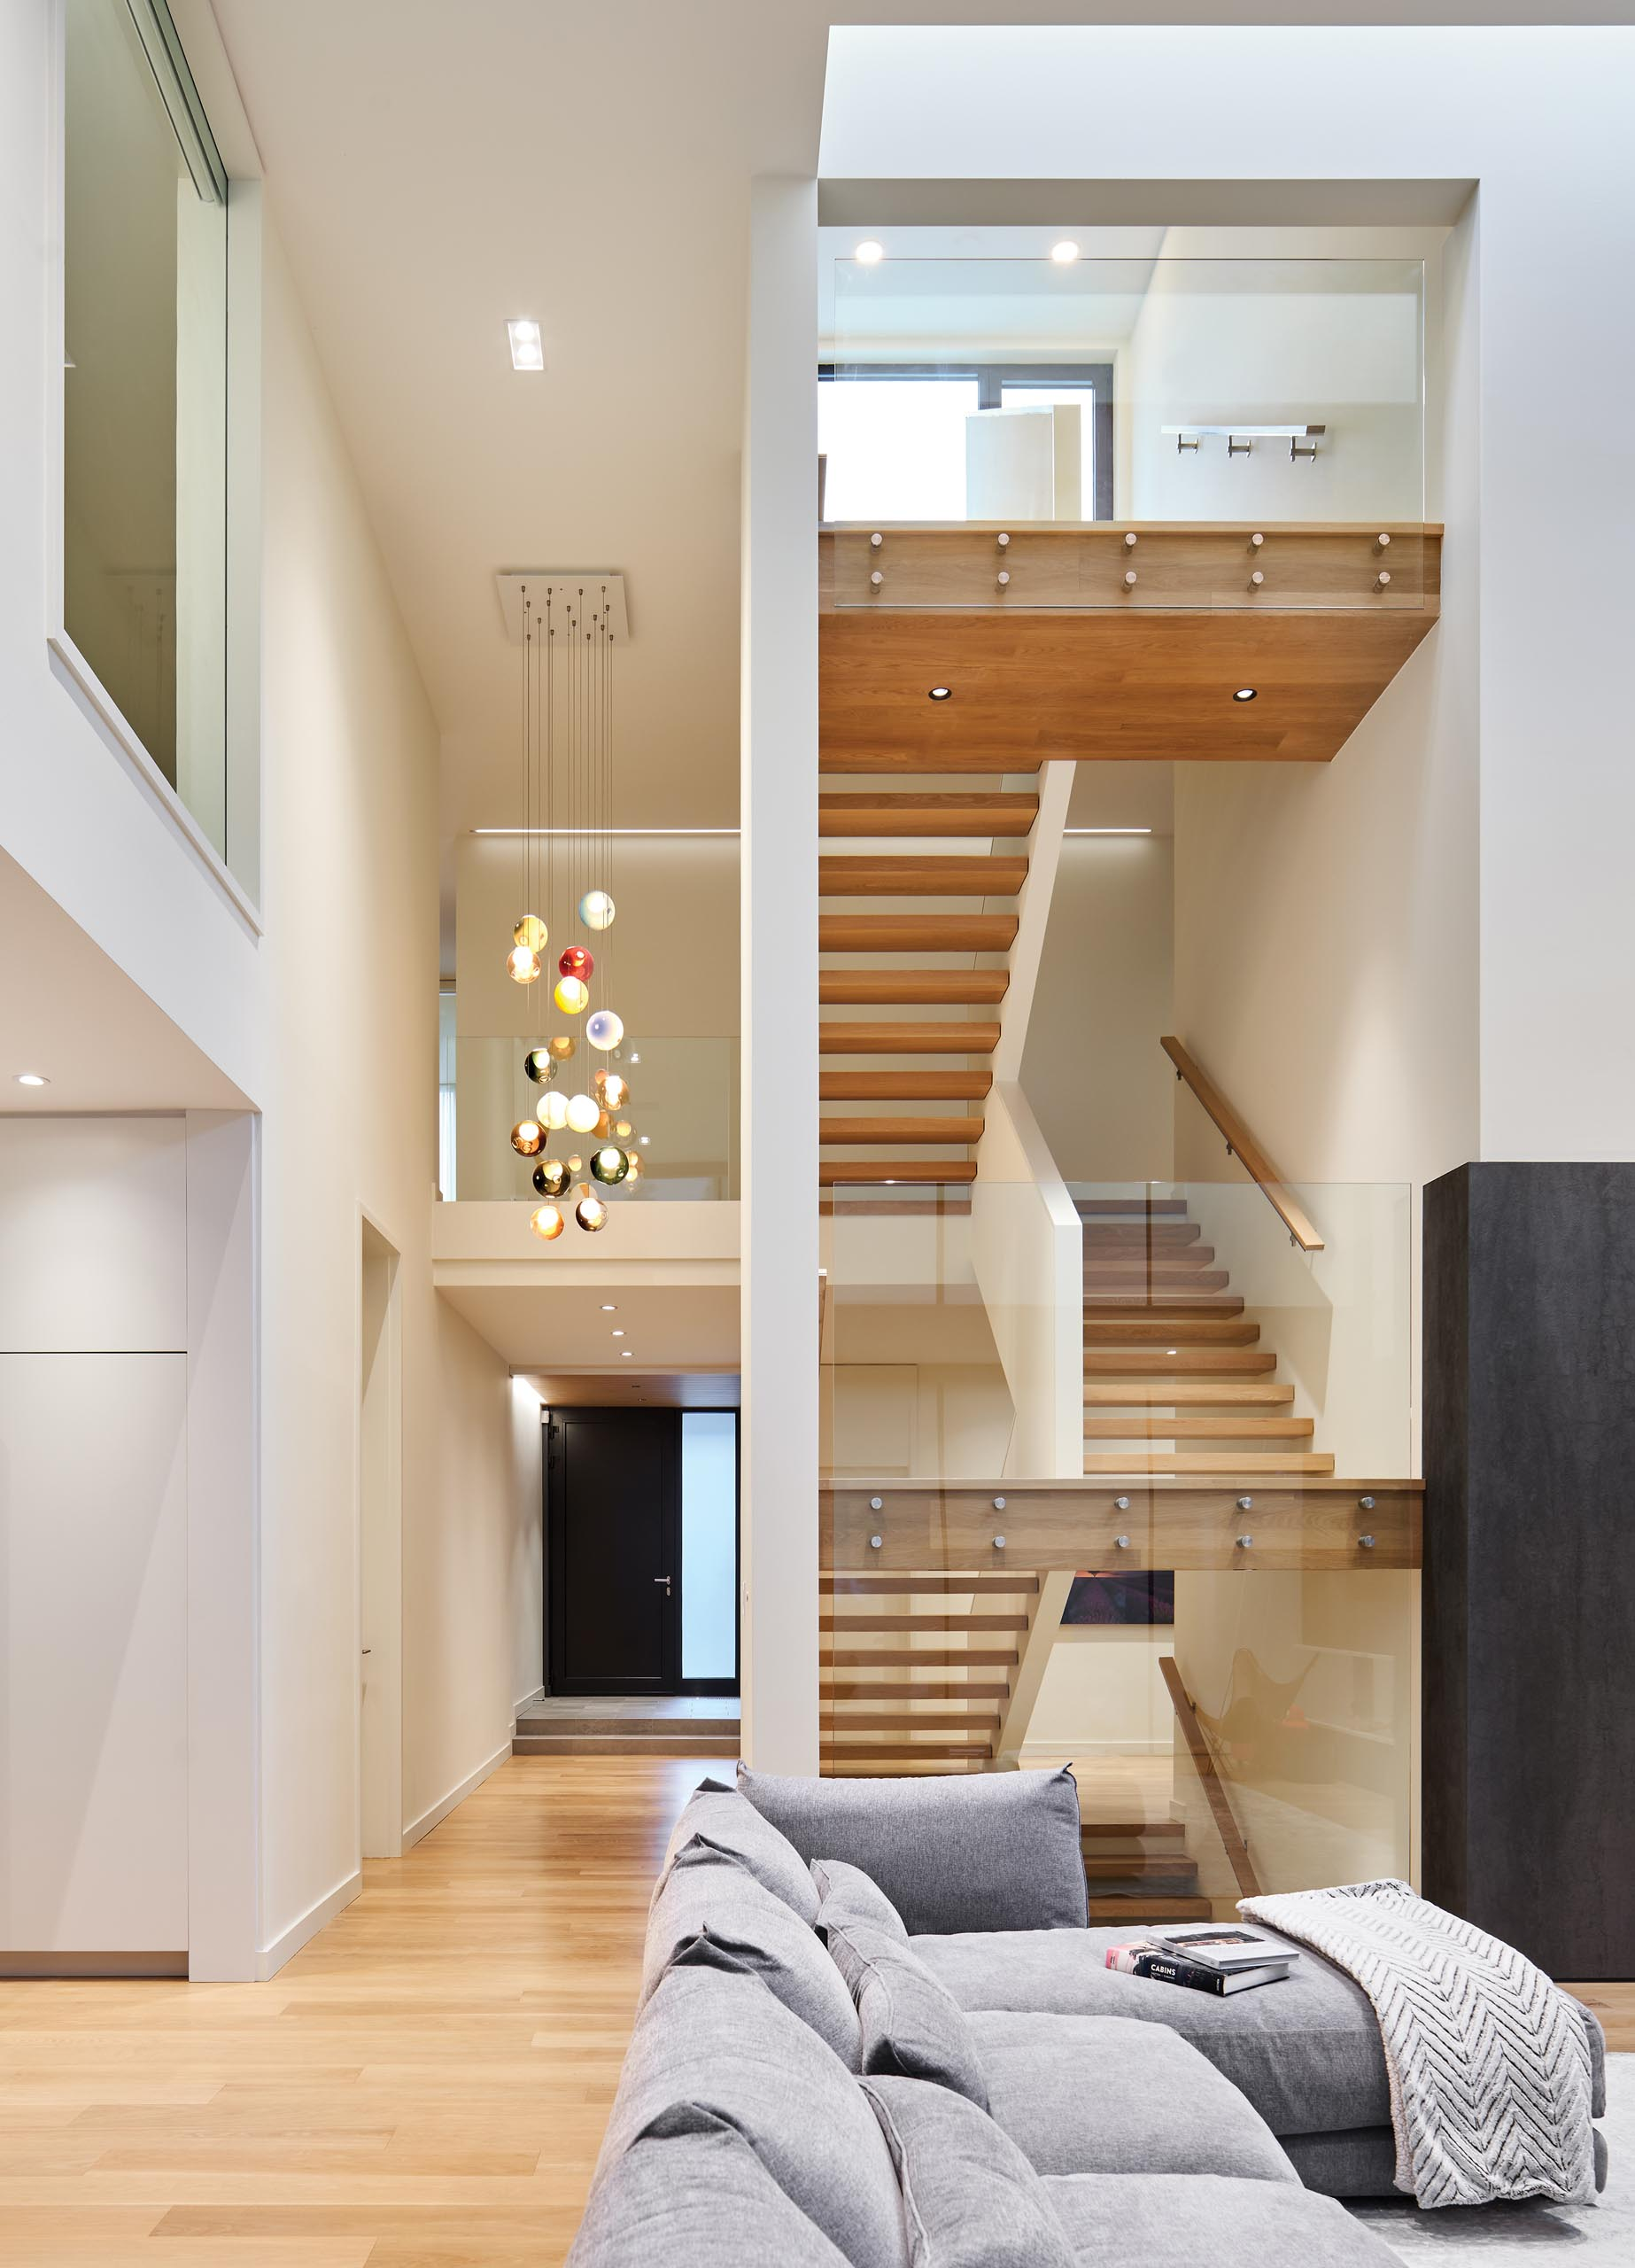 An open wood staircase with glass railings that connects the multiple levels of the home. A colorful accent has been added with the inclusion of suspended Bocci lights.